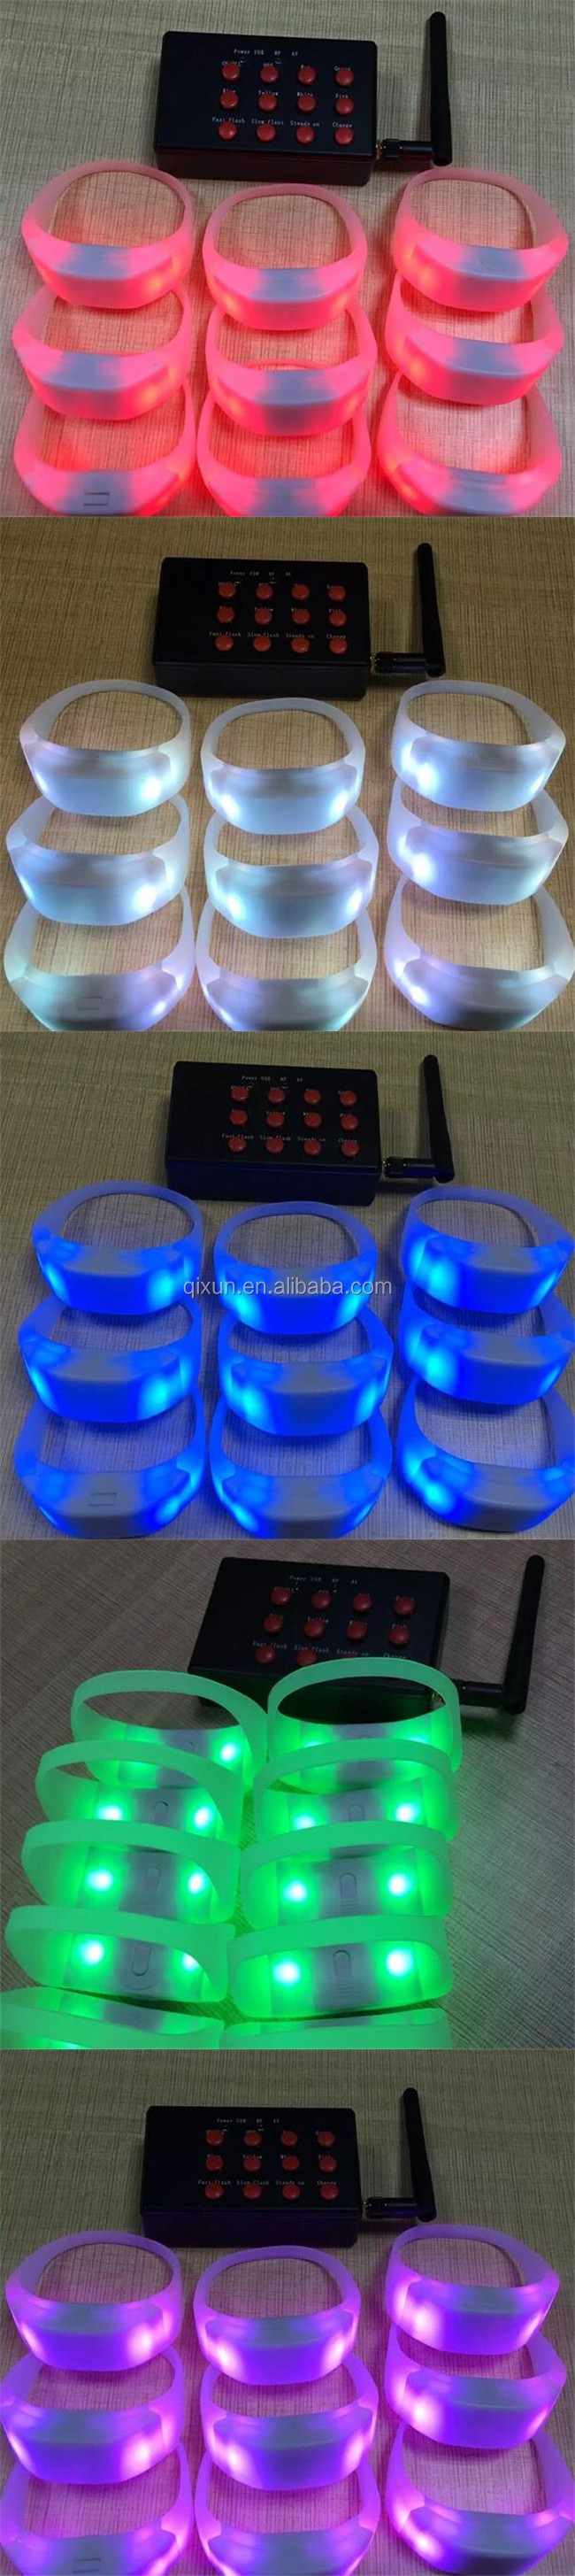 Paypal accept New event & party multicolor remote controlled led flashing bracelet